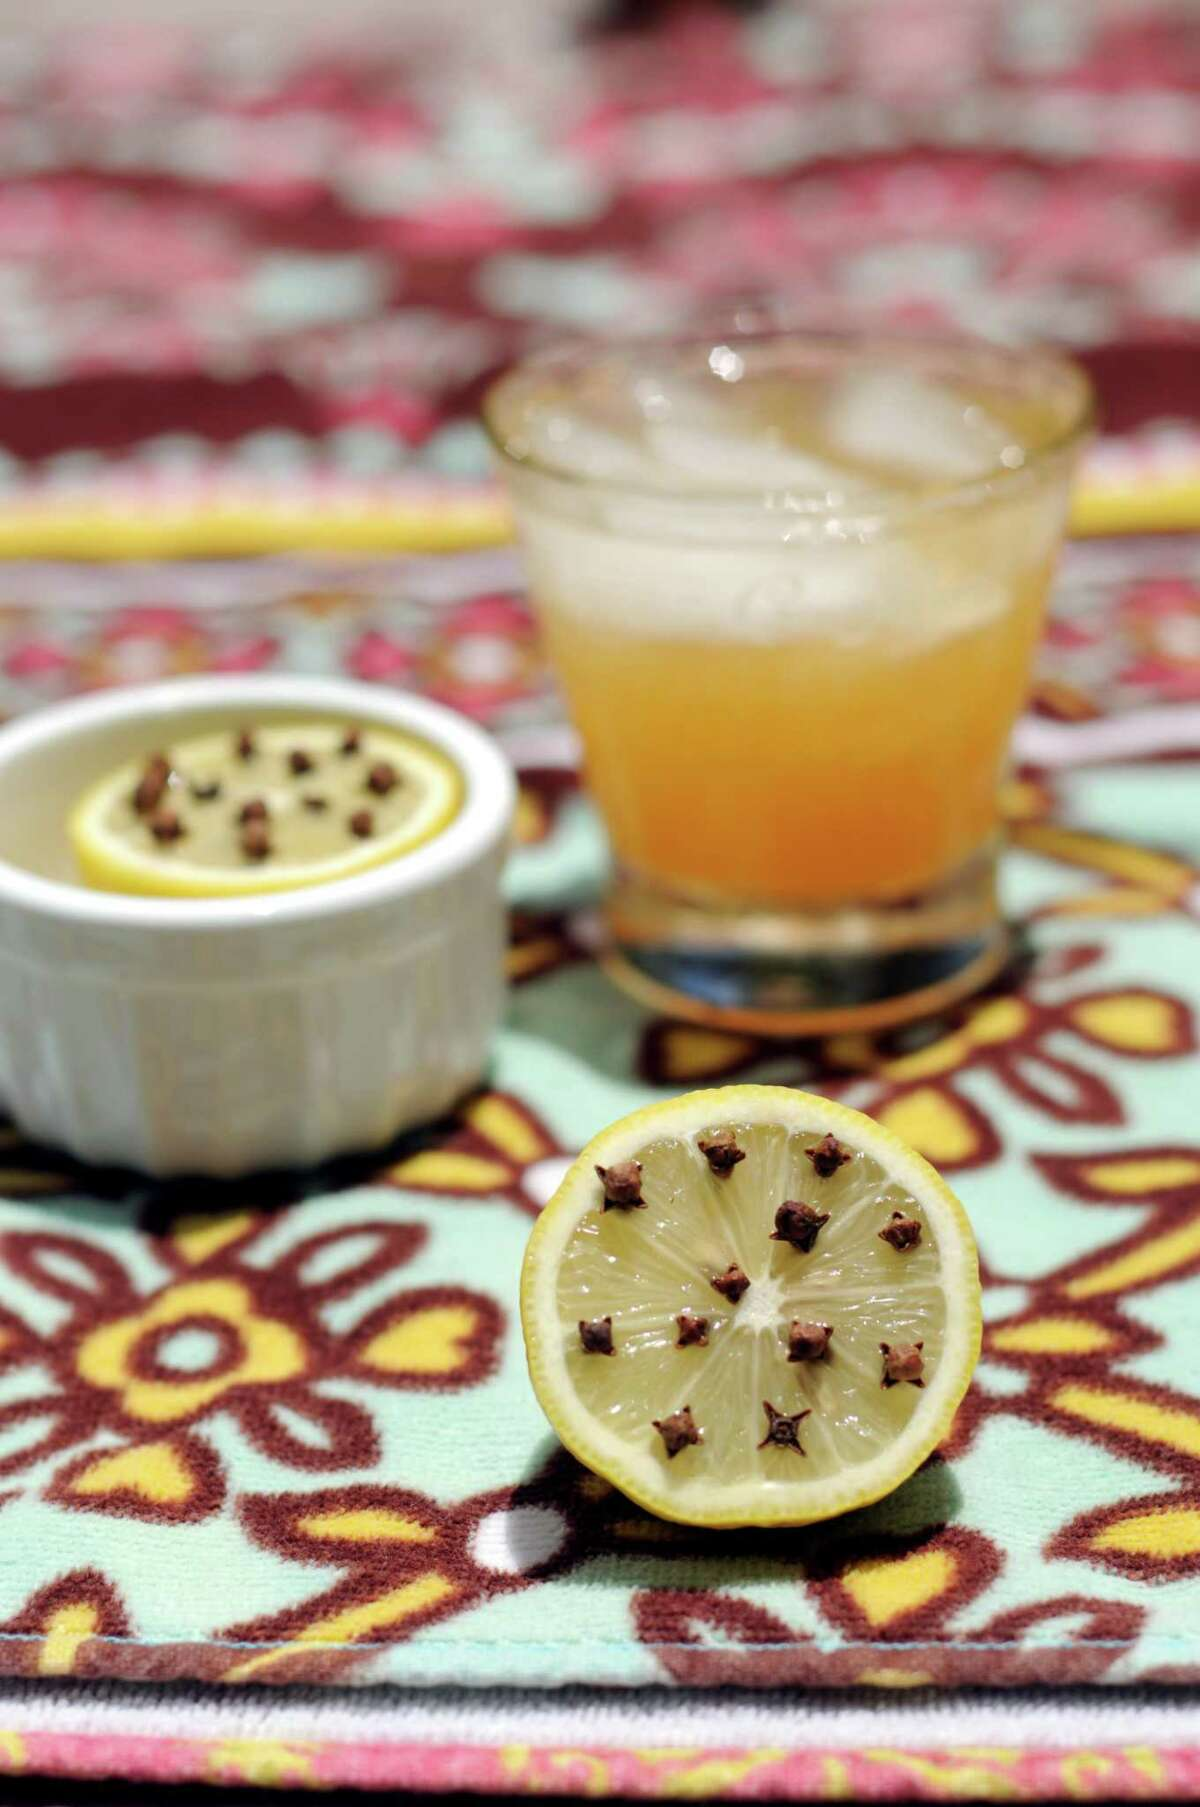 Lemon halves studded with cloves will help keep bugs away from your fruity summer beverages.